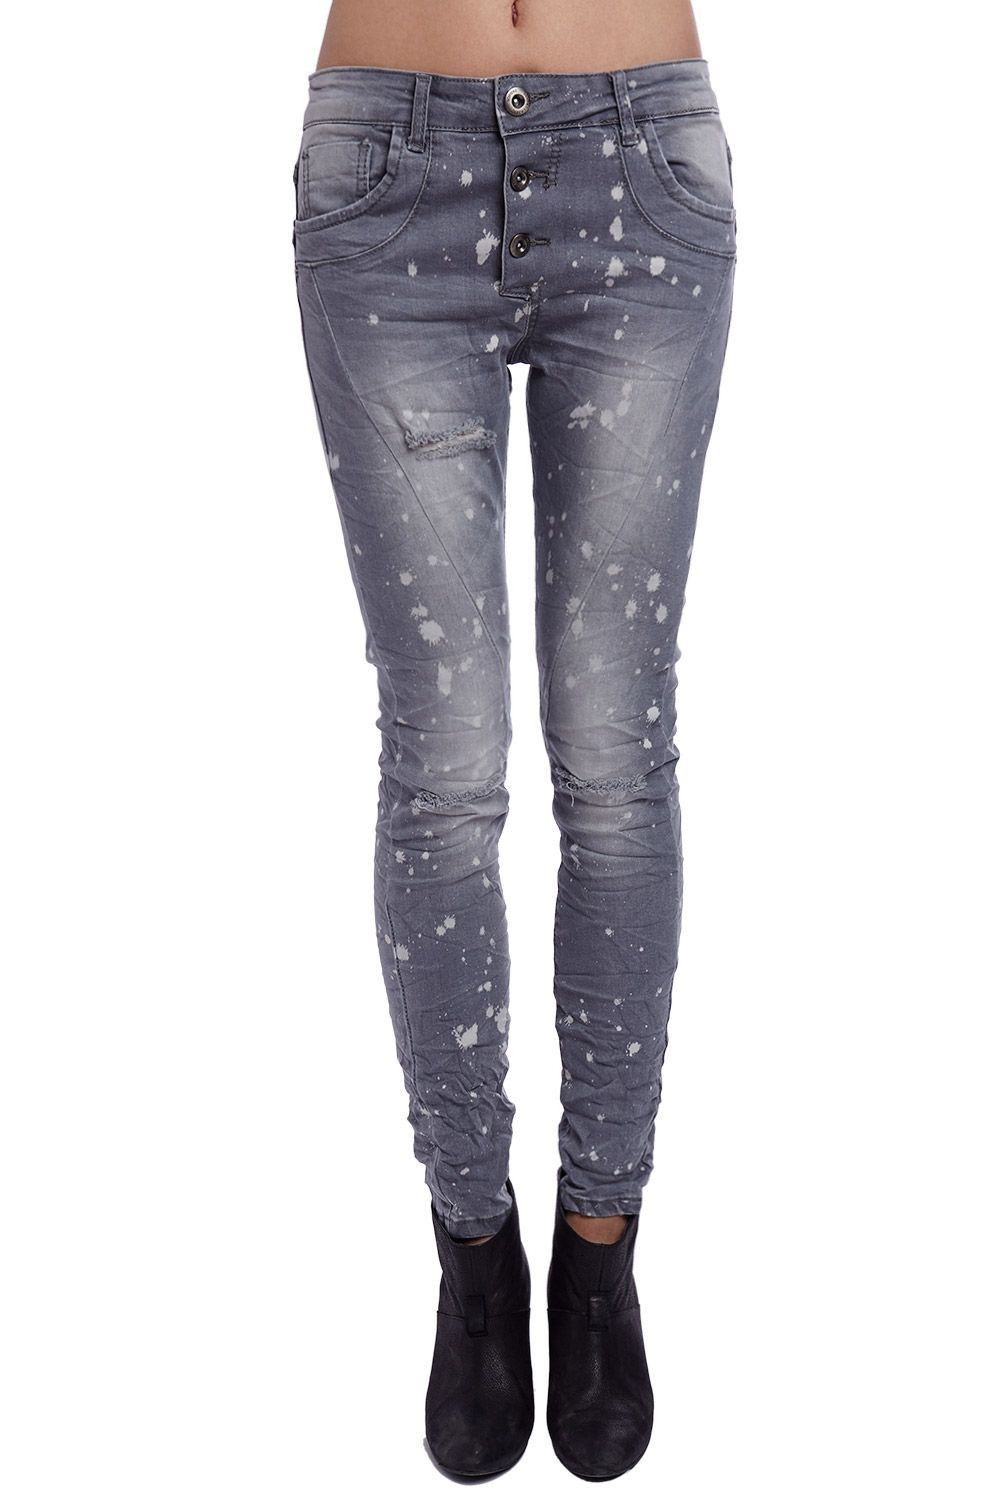 Jeans In Washed Gray With Ripped Knee  9e9d7f6ca4